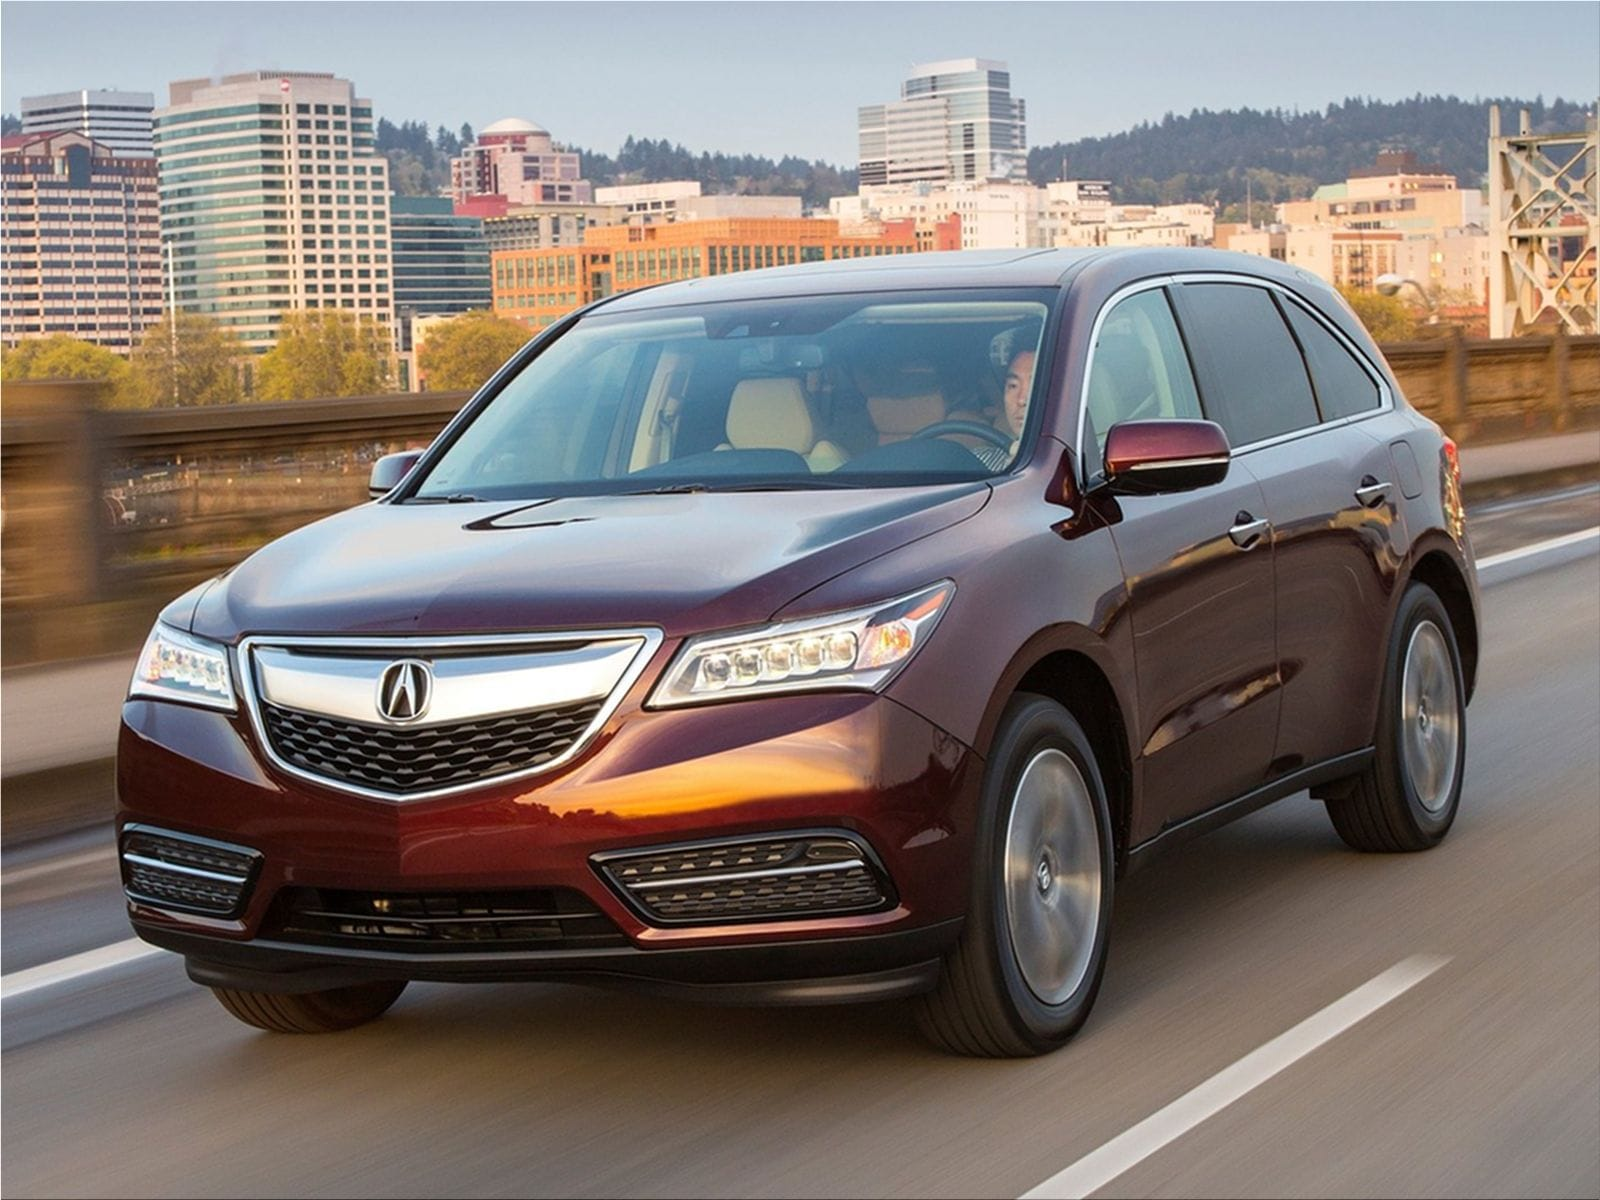 price mdx used acura honda ami for l a amazing sale at condition